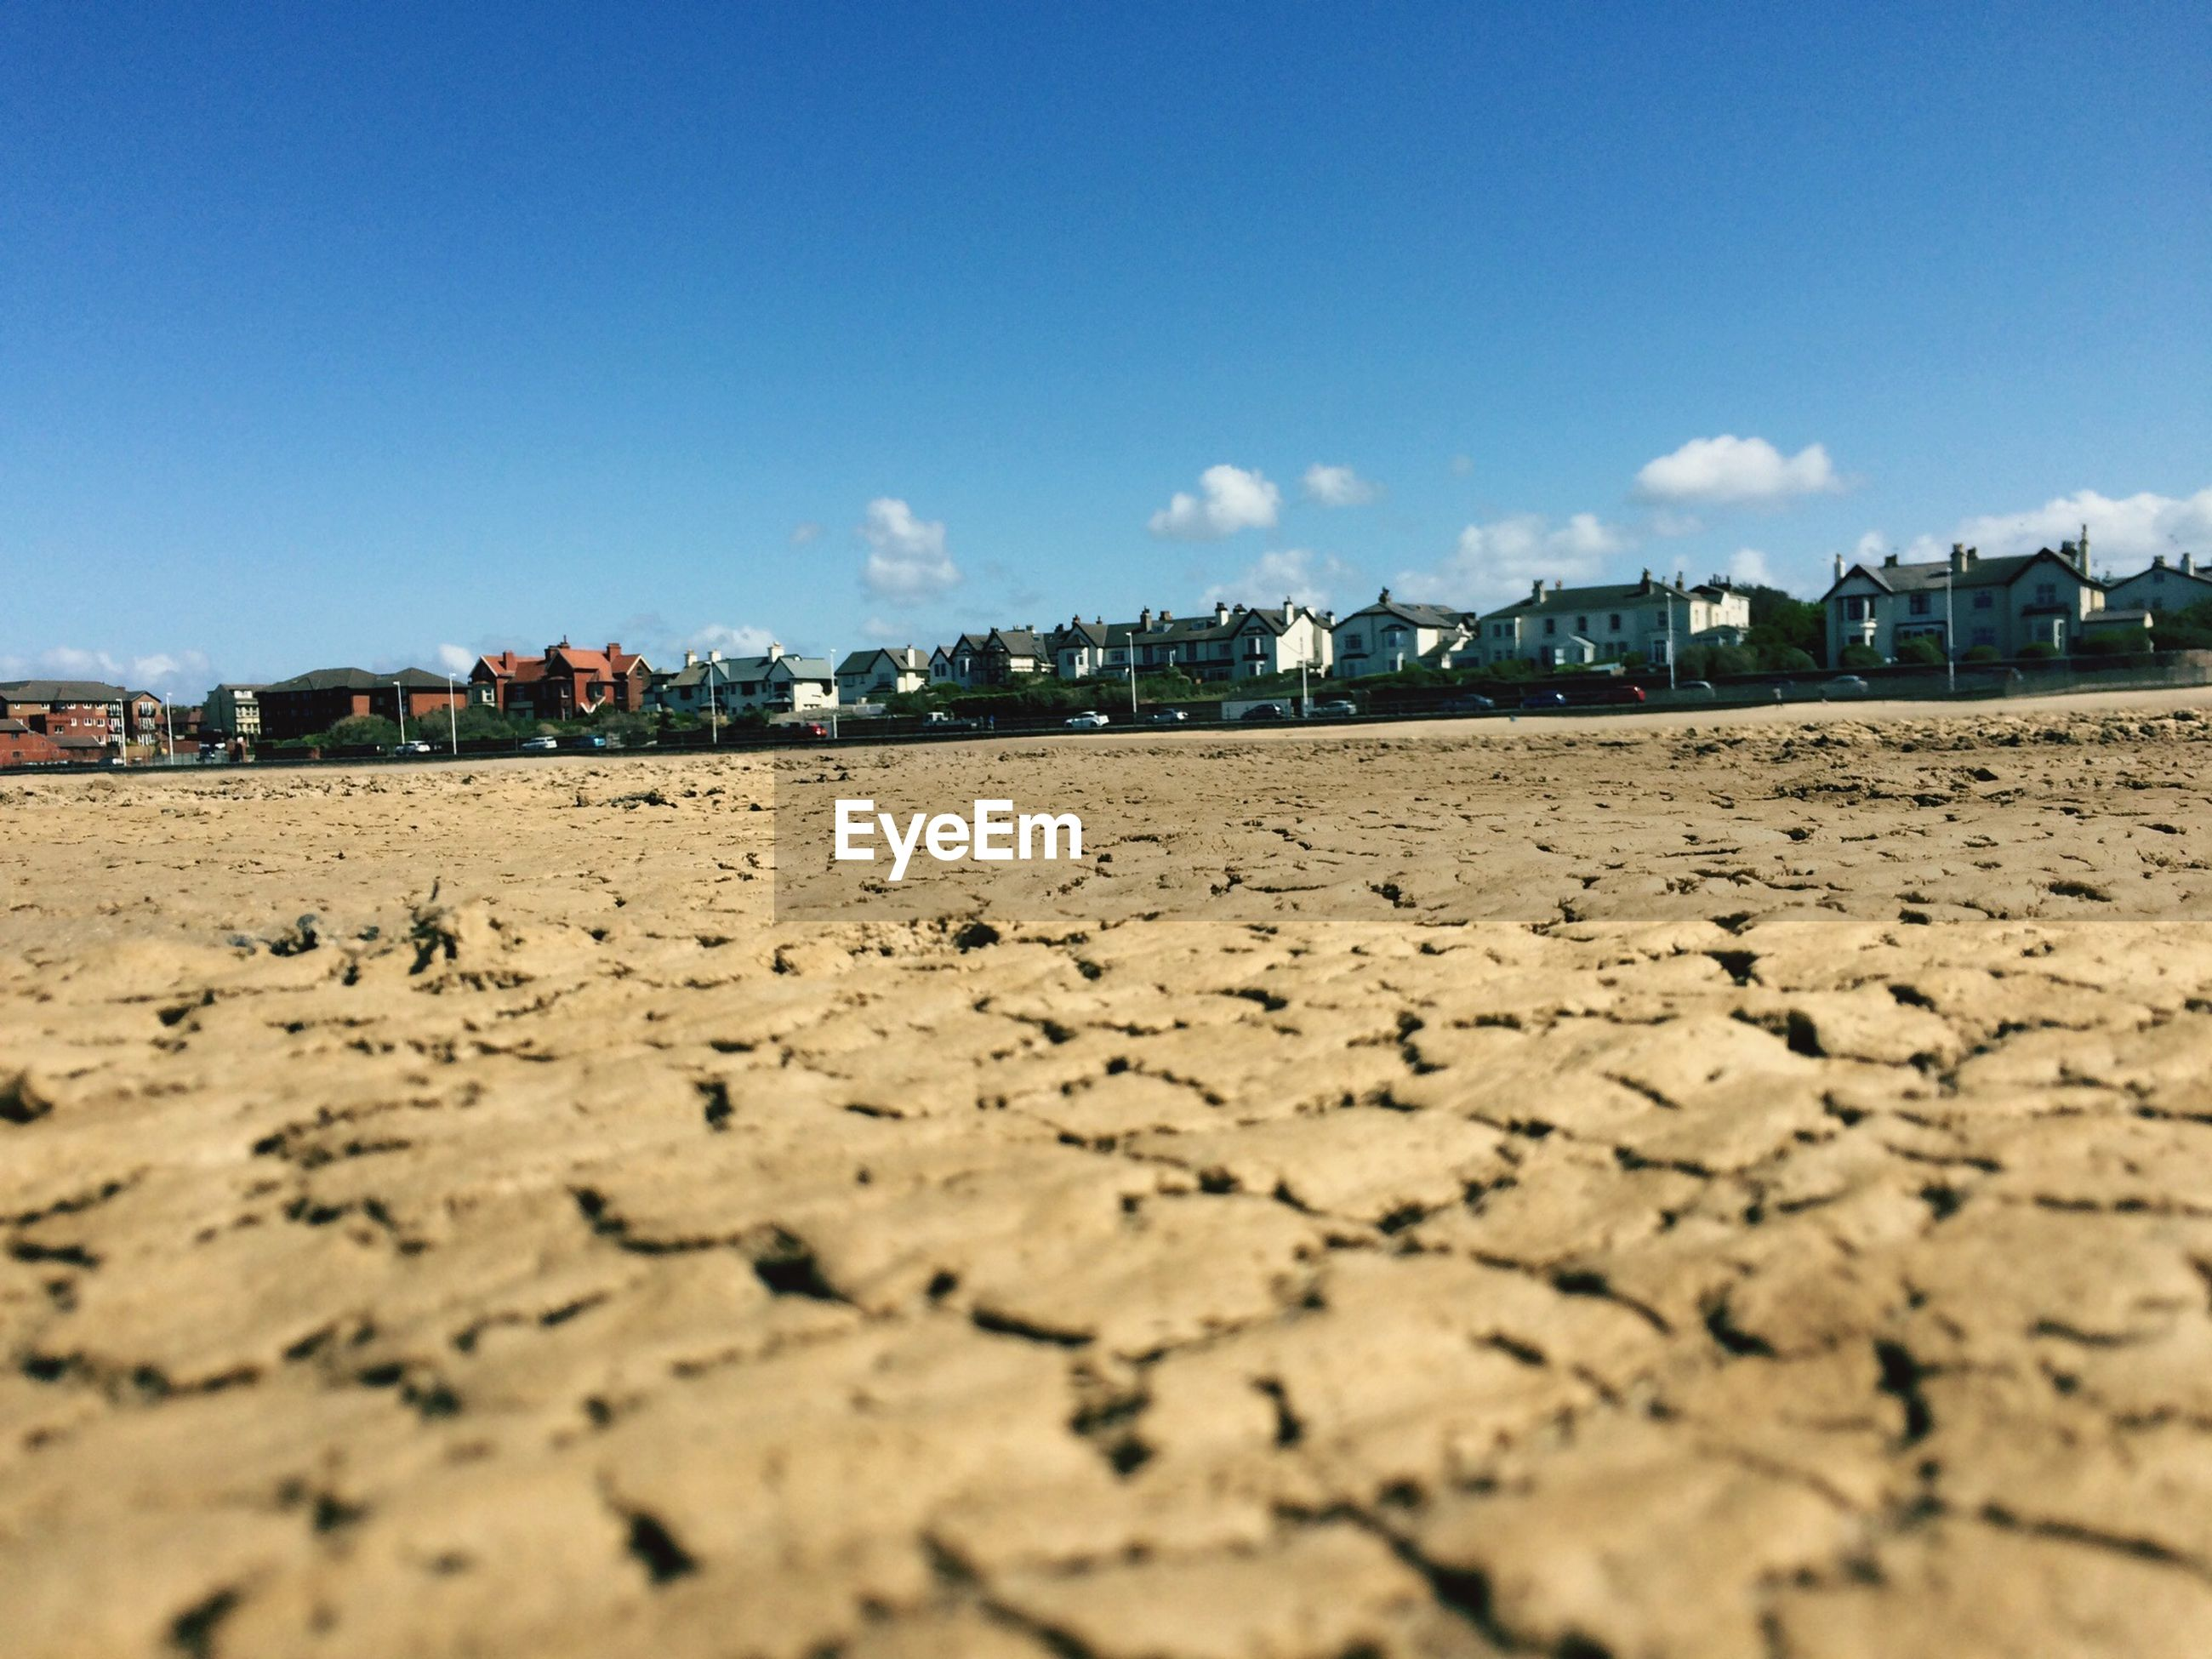 Surface level of hoylake beach with town in background